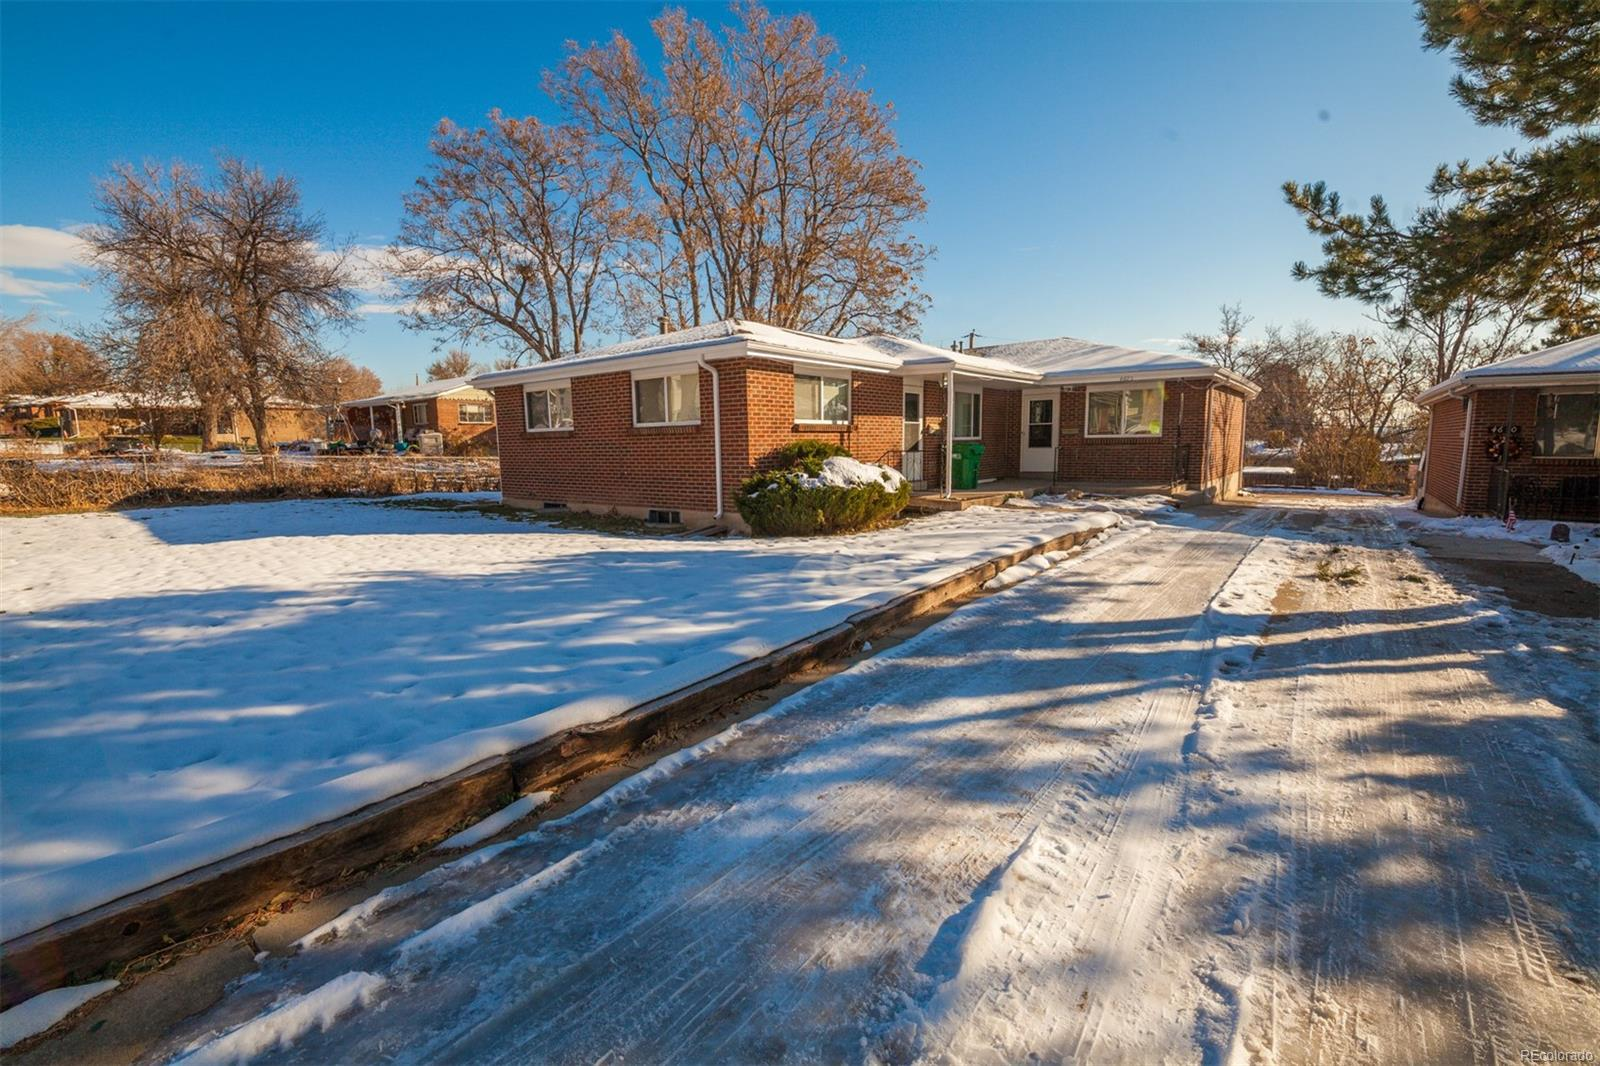 4620 S Lowell Boulevard, Englewood, CO 80110 - Englewood, CO real estate listing